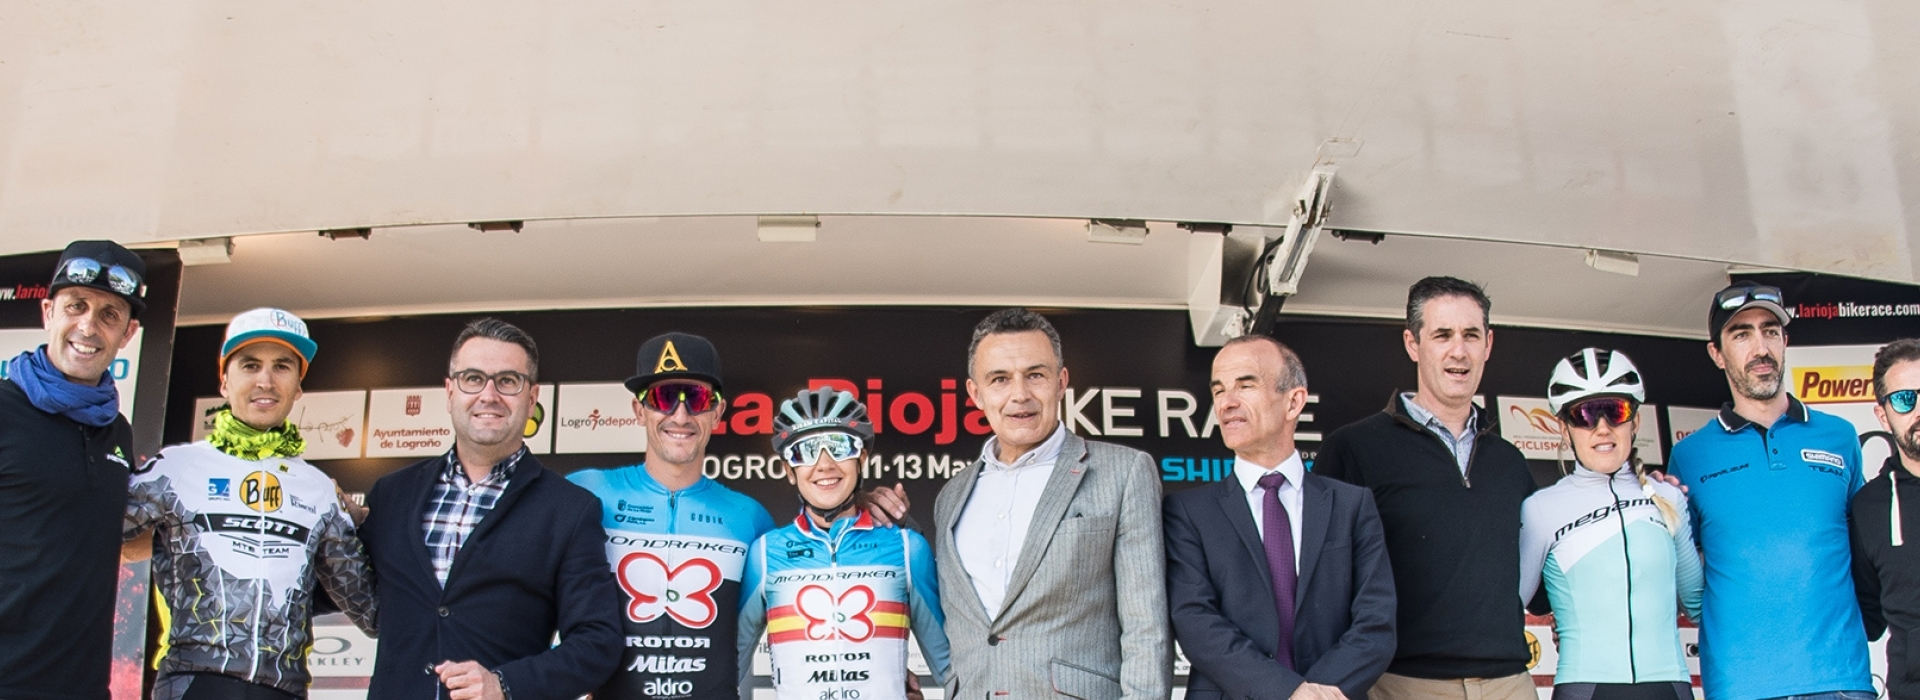 ¡La Rioja Bike Race presented by Shimano 2018 ya está aquí!